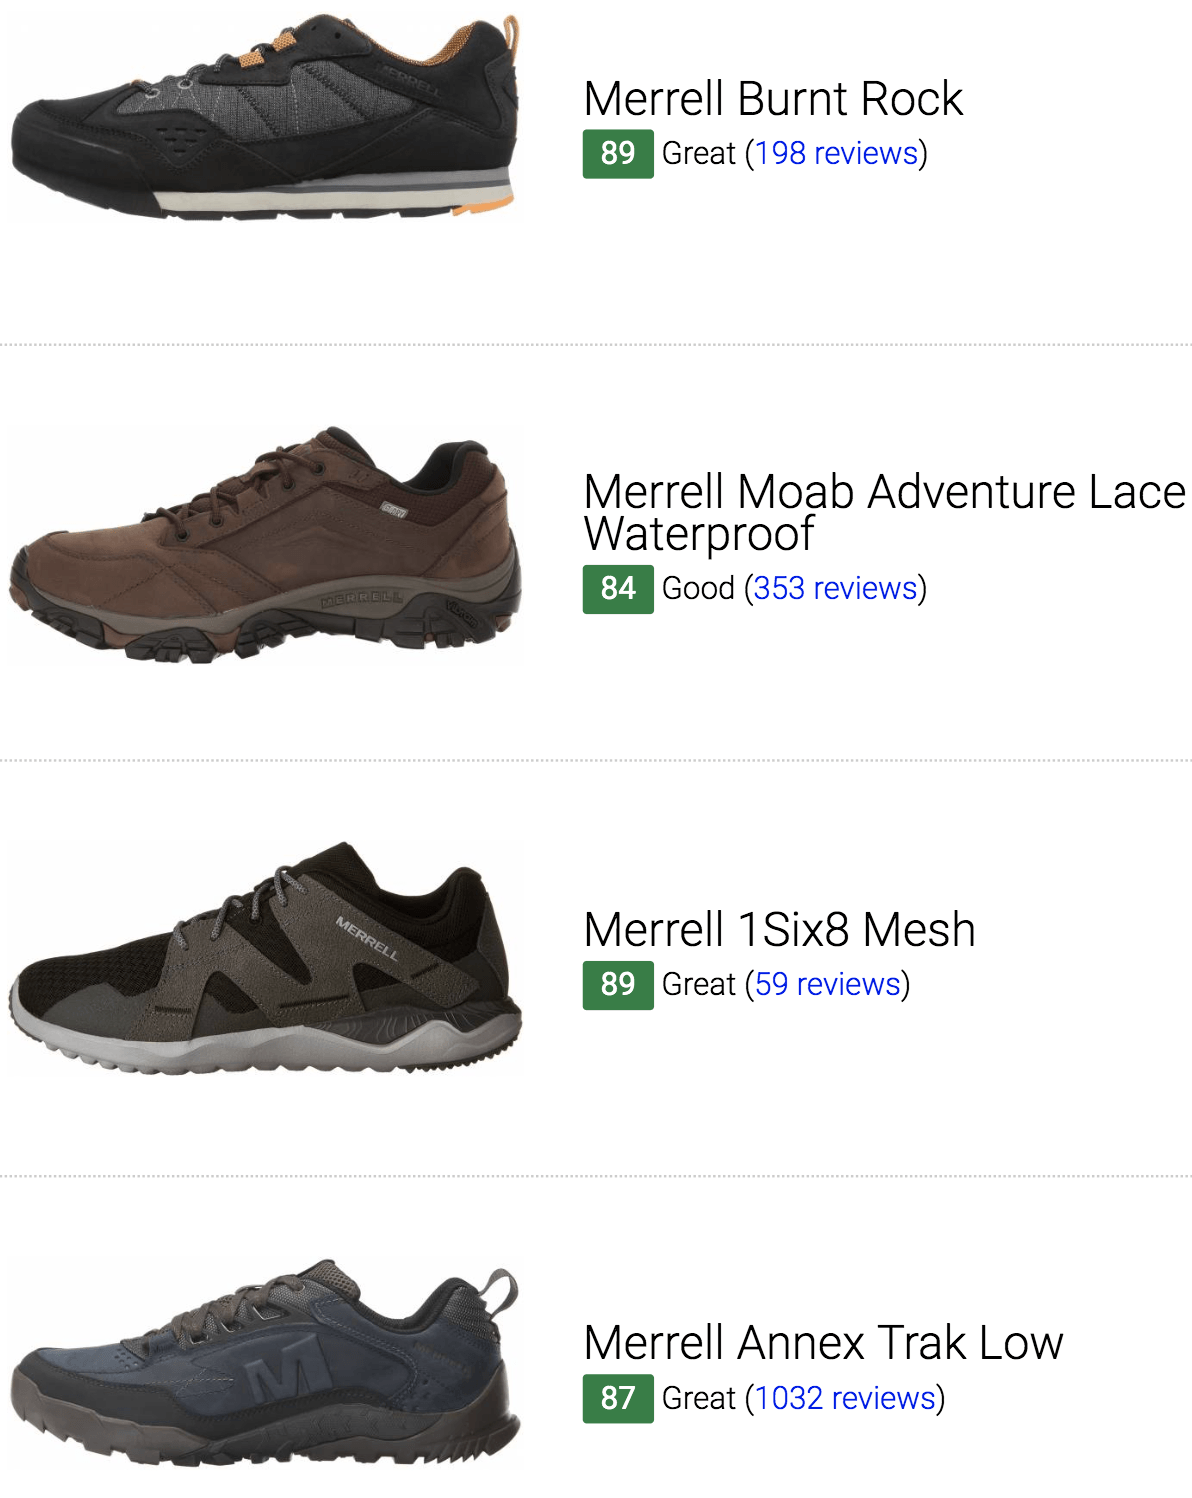 air jordan 3 discontinued merrell